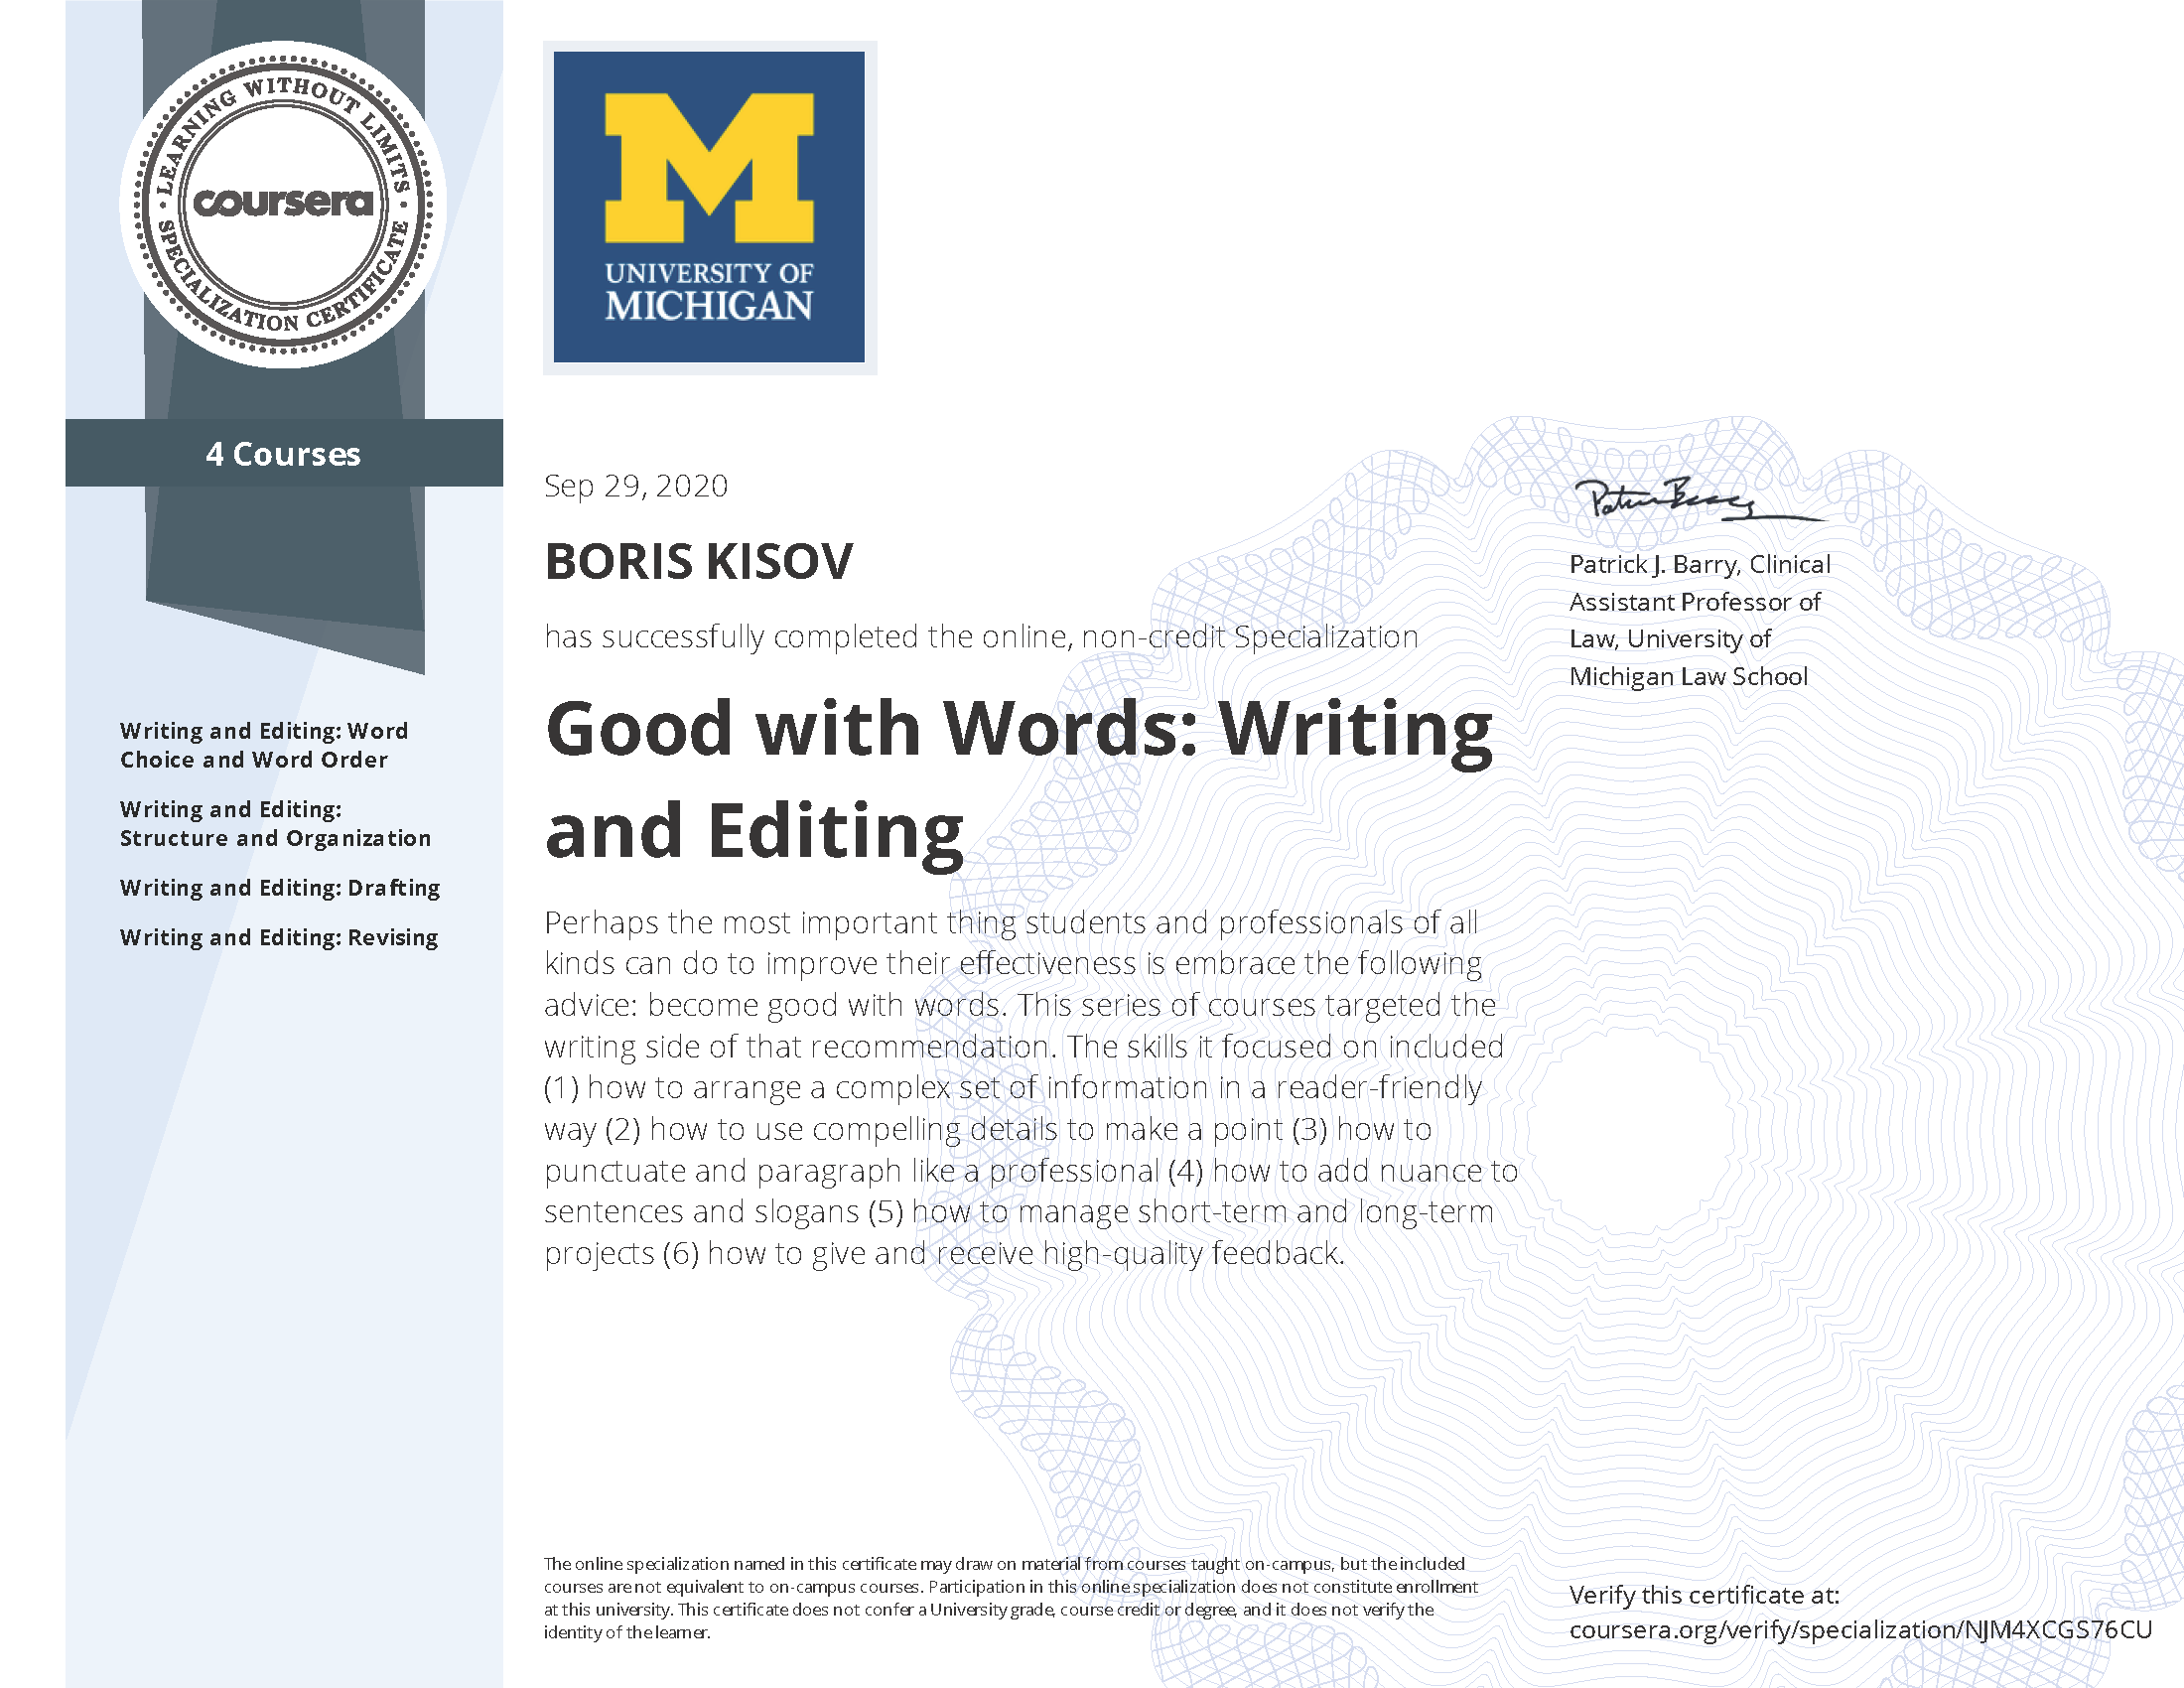 Good with Words: Writing and Editing